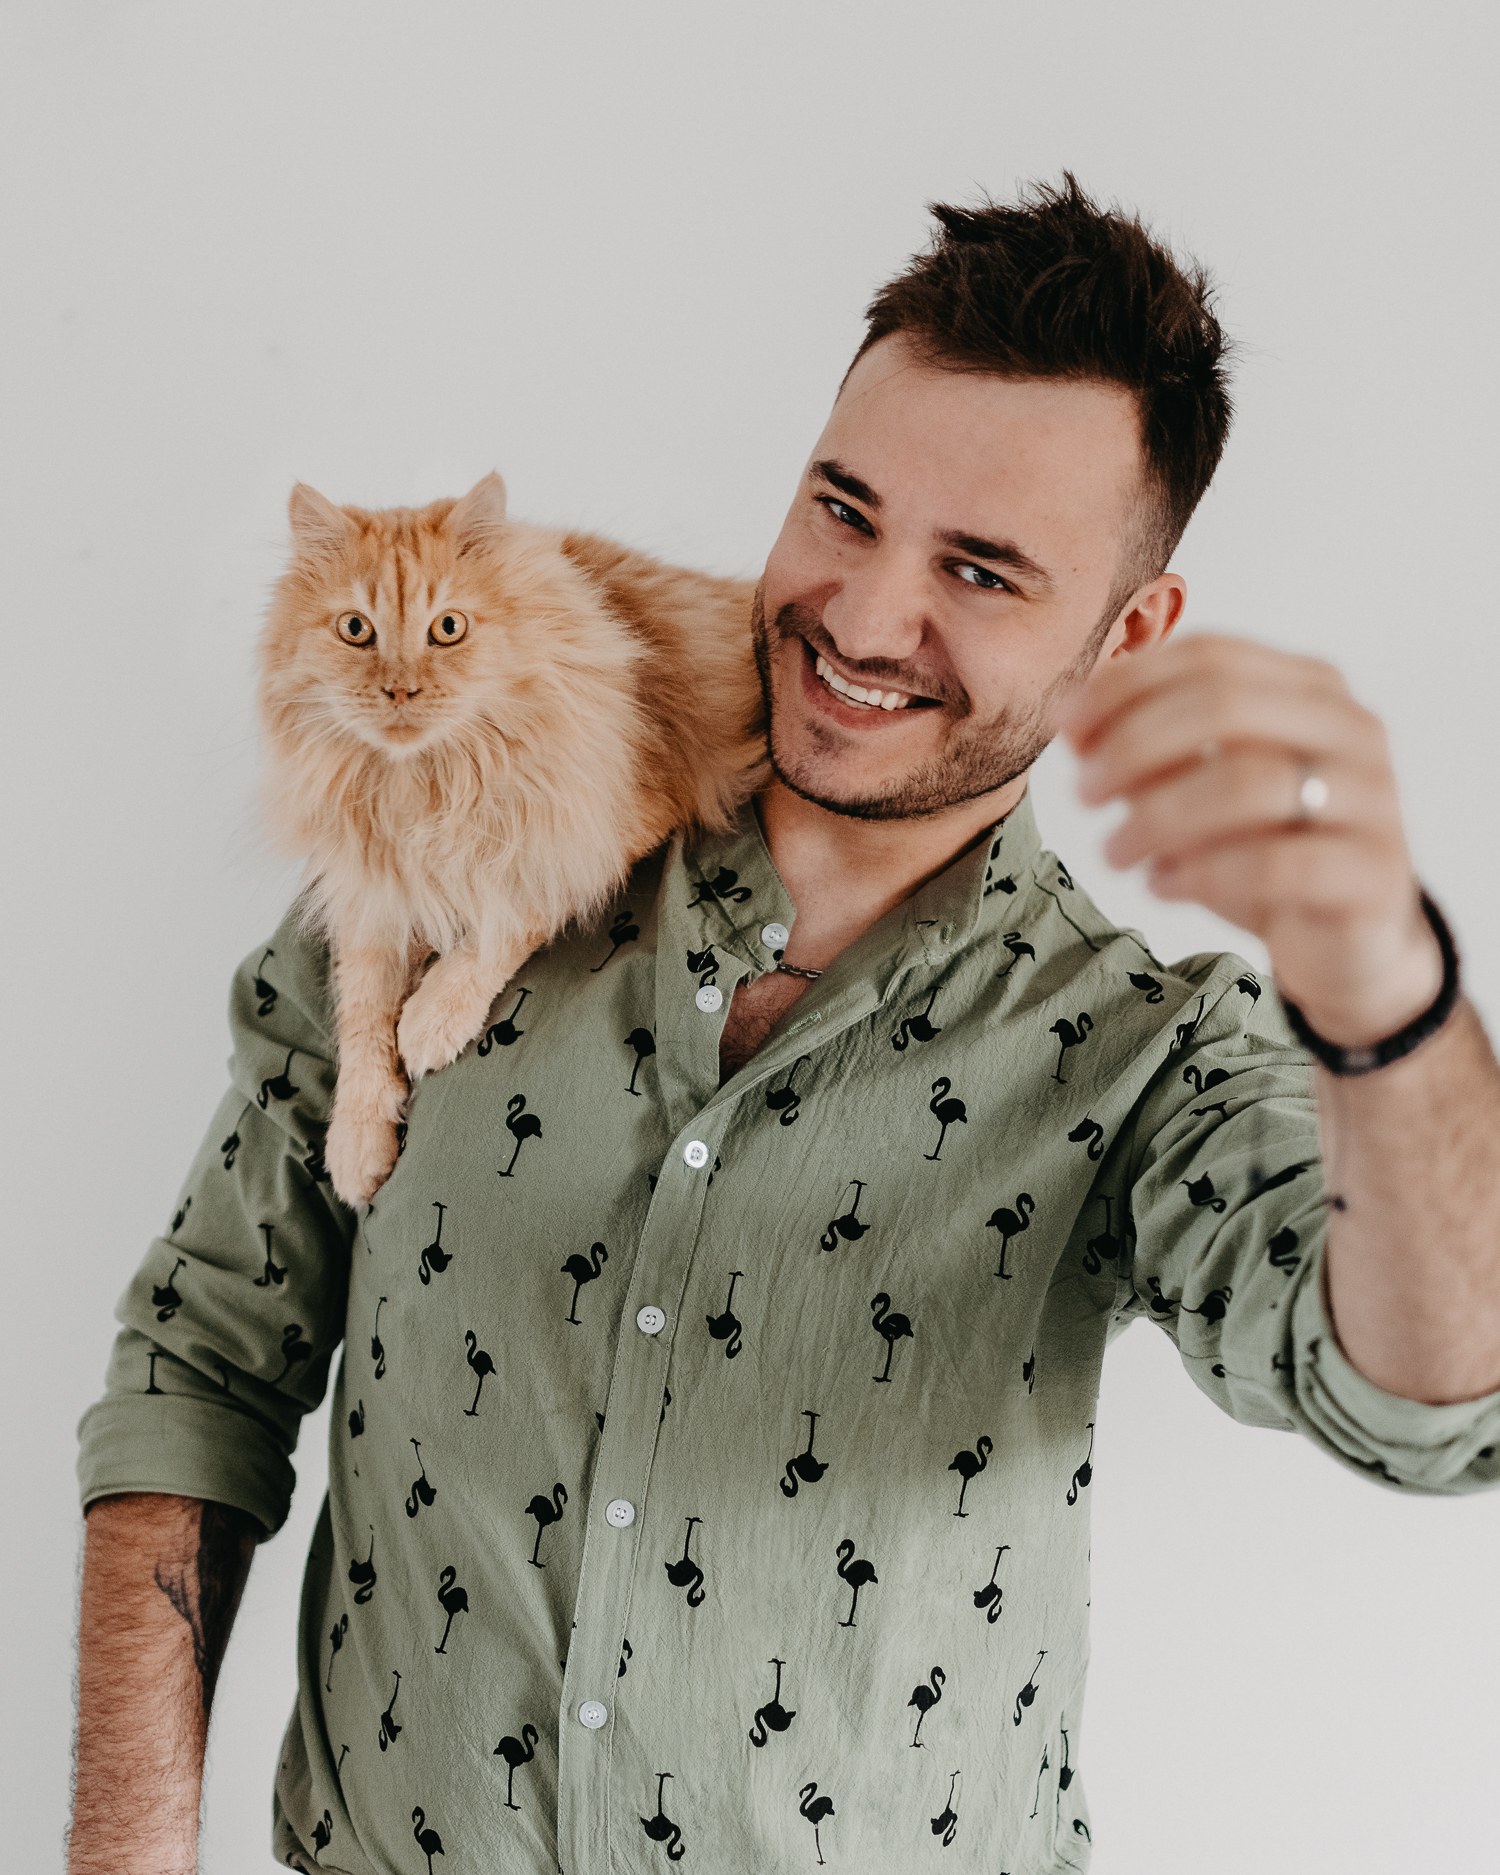 Cute furry orange cat sitting on man's shoulder